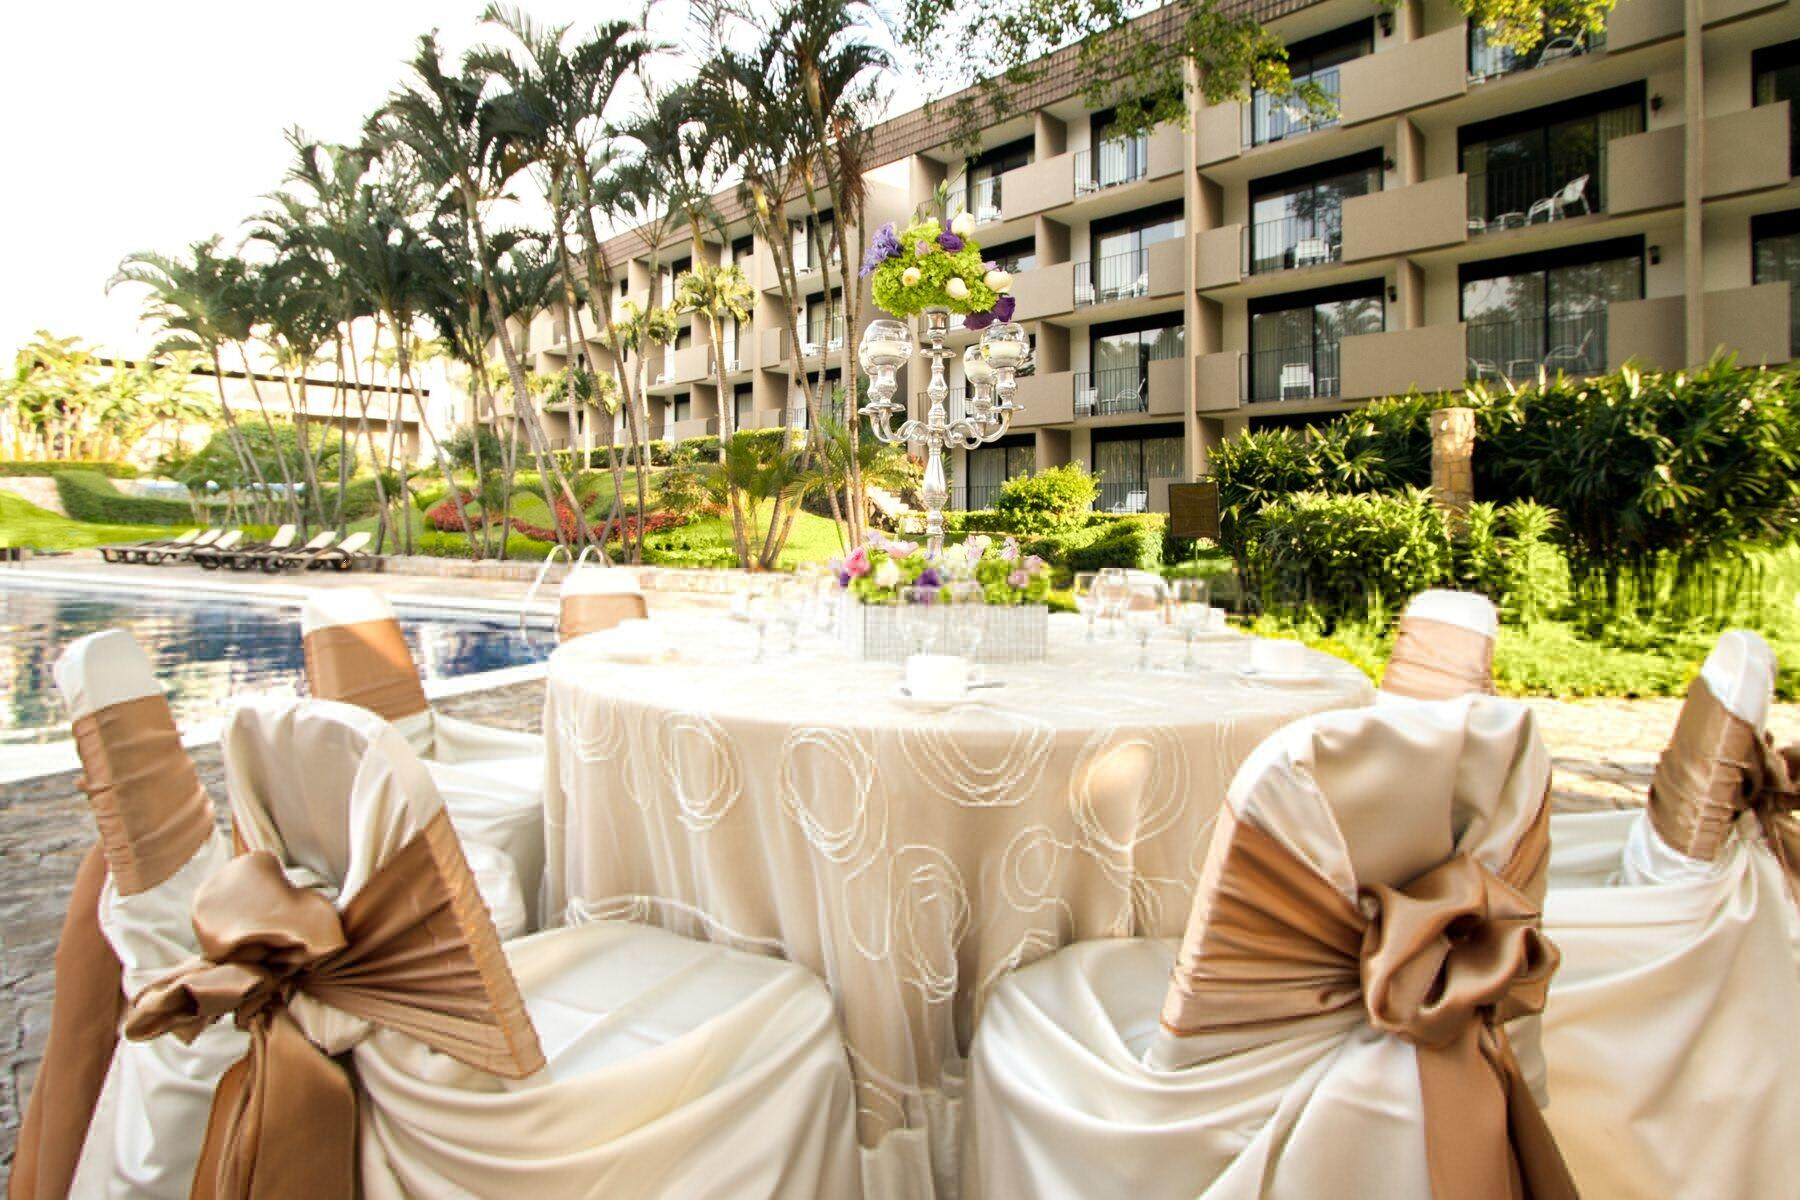 Banquet rounds with elegant linens set for outdoor wedding recep